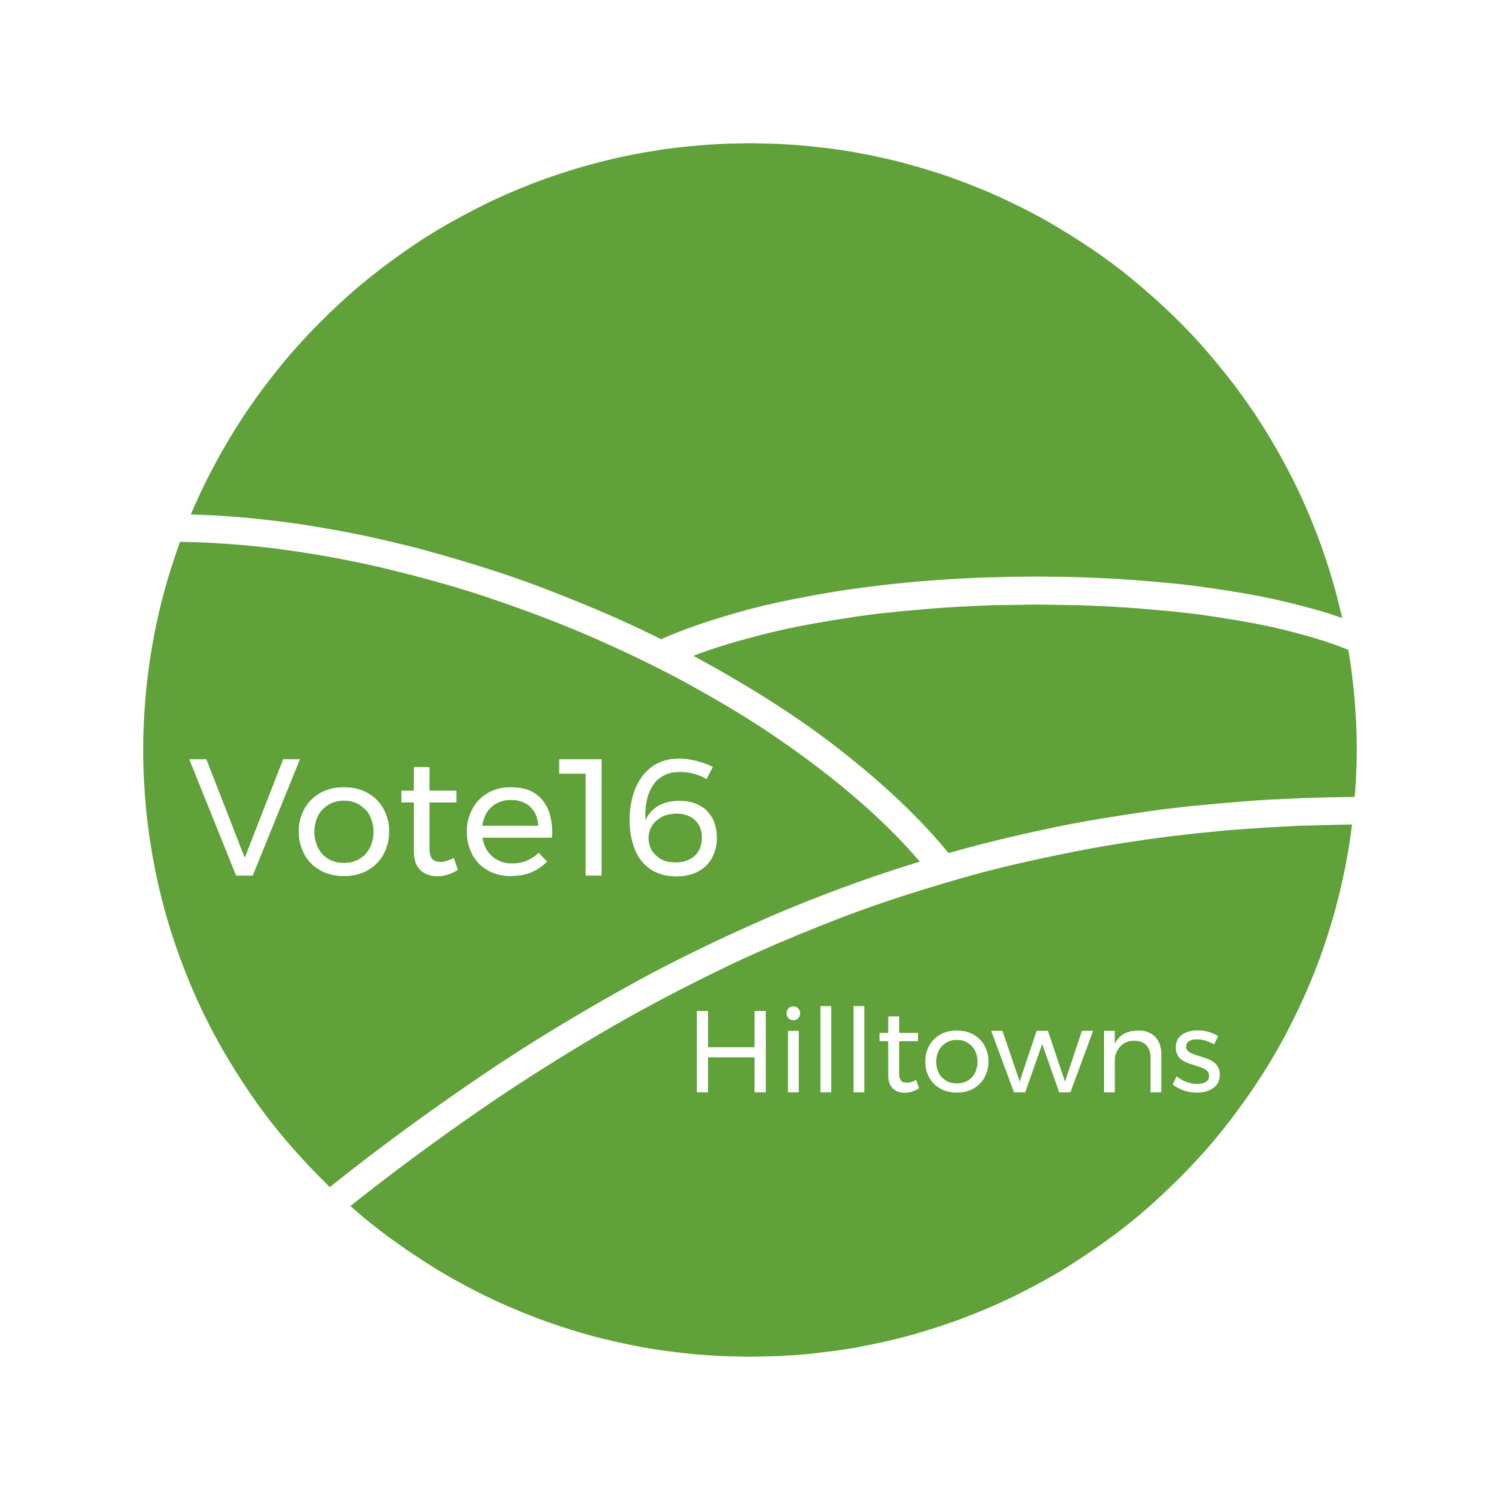 Vote16 Hilltowns